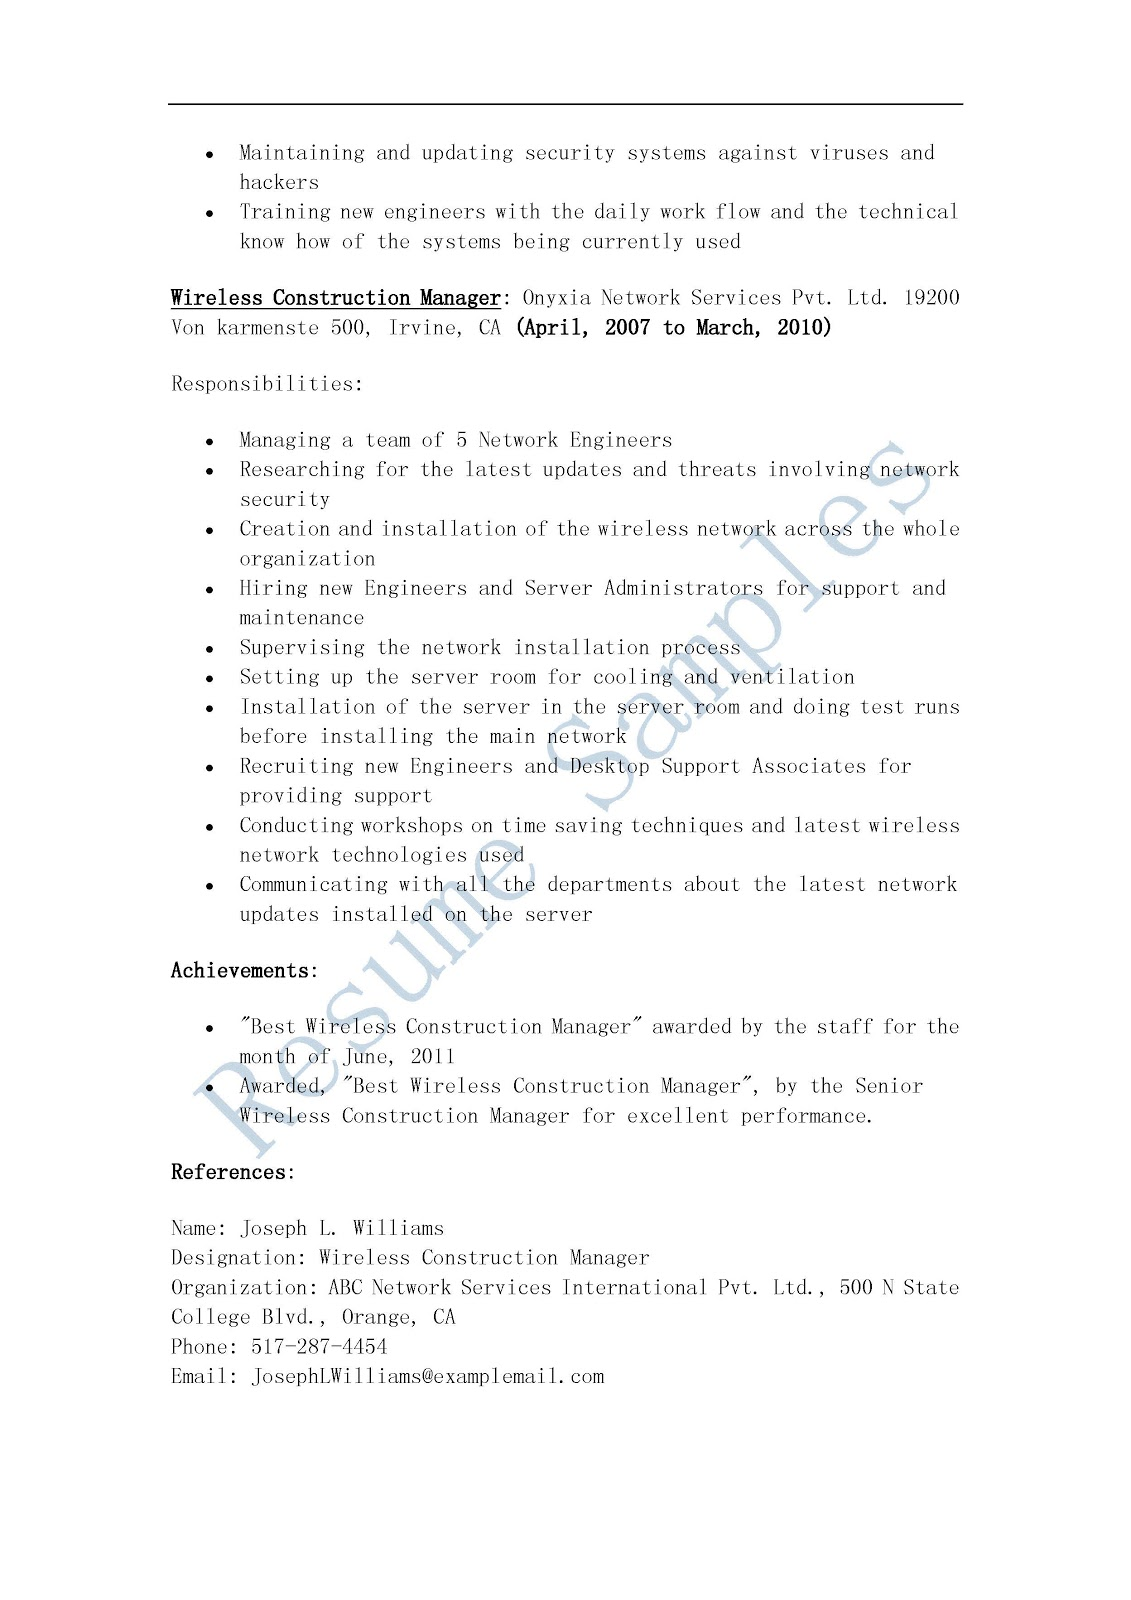 Supervisor Resume Examples 2012 Resume Samples Wireless Construction Manager Resume